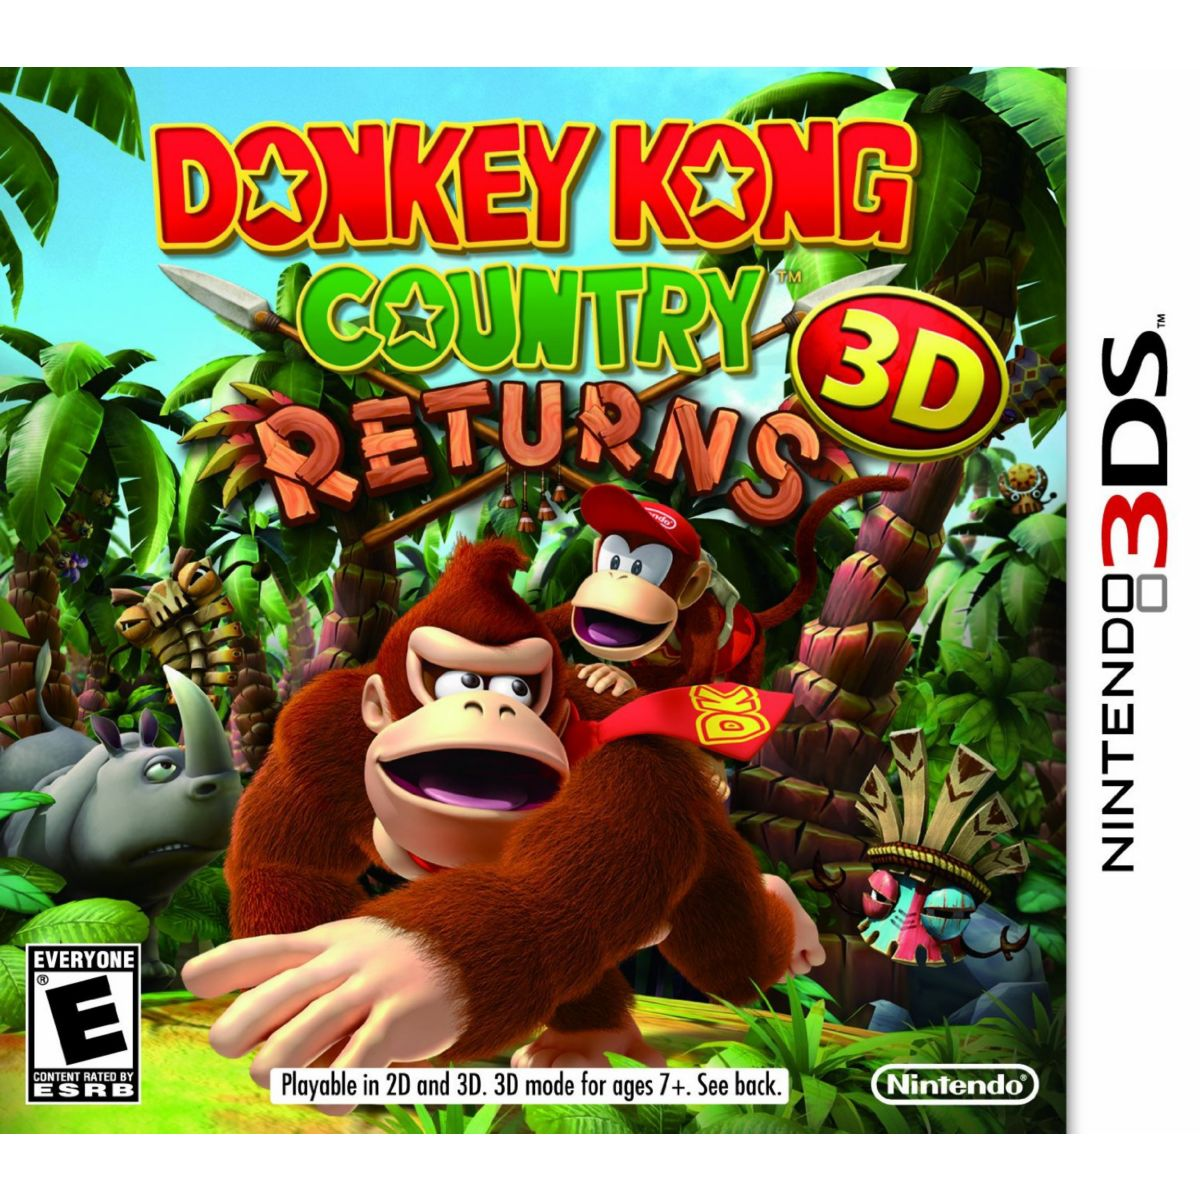 Jeu 3ds nintendo donkey kong country returns - 2% de remise immédiate avec le code : cool2 (photo)